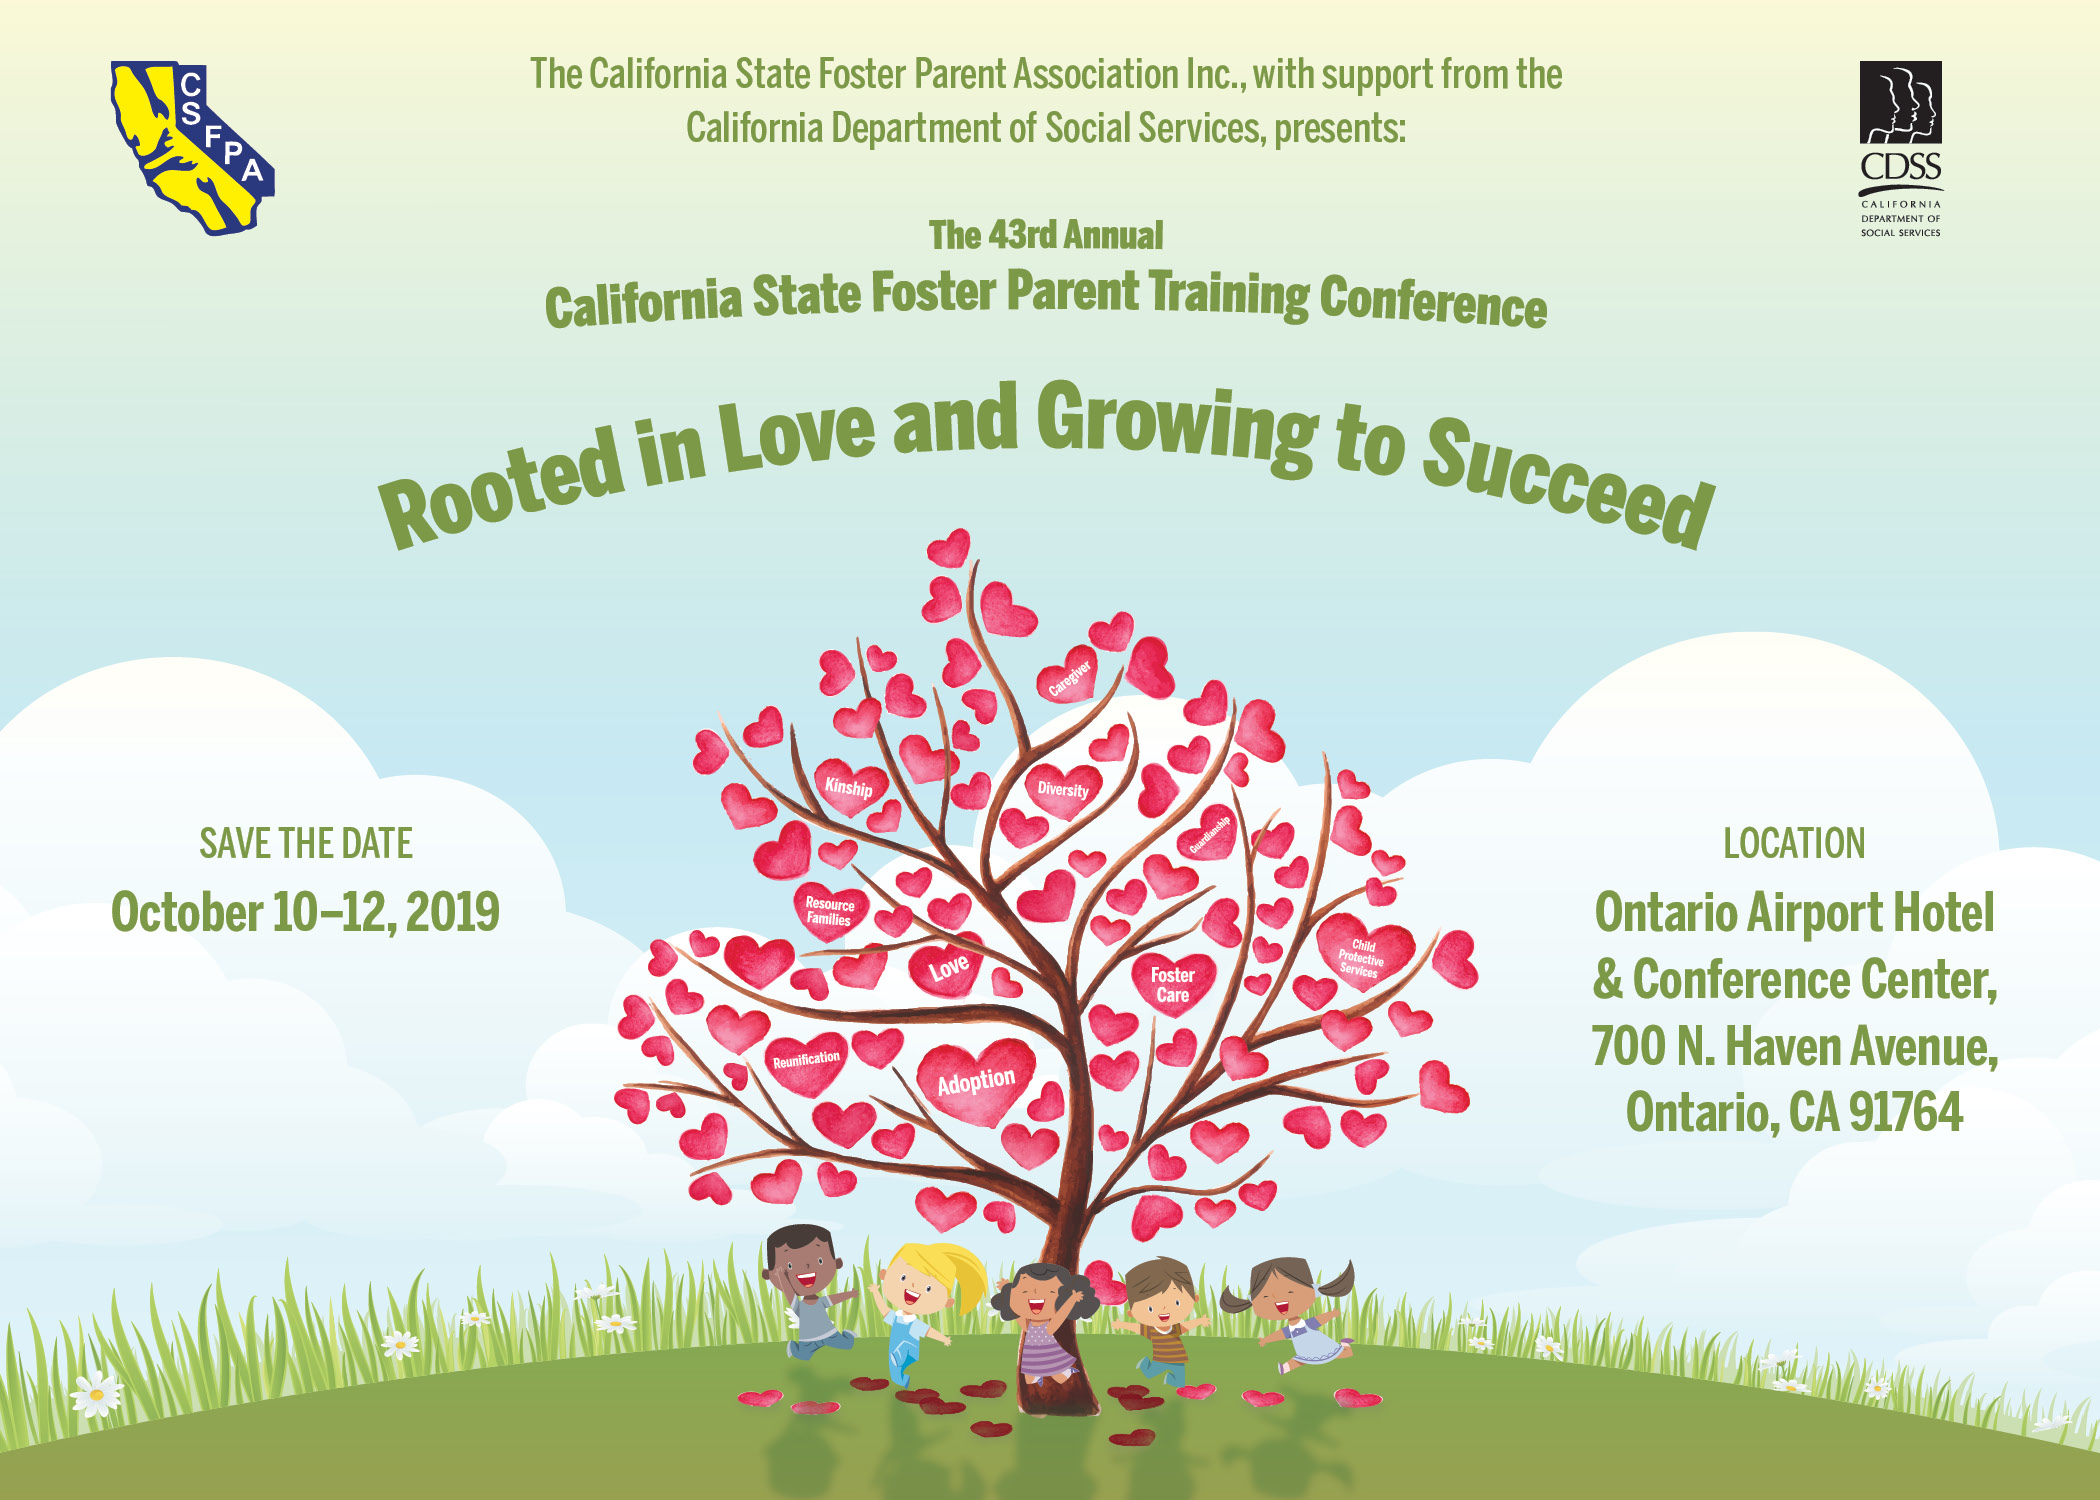 43rd Annual California Foster Parent Training Conference October 10 through 12, 2019 at the Ontario Airport Hotel and Conference Center, Ontario, California